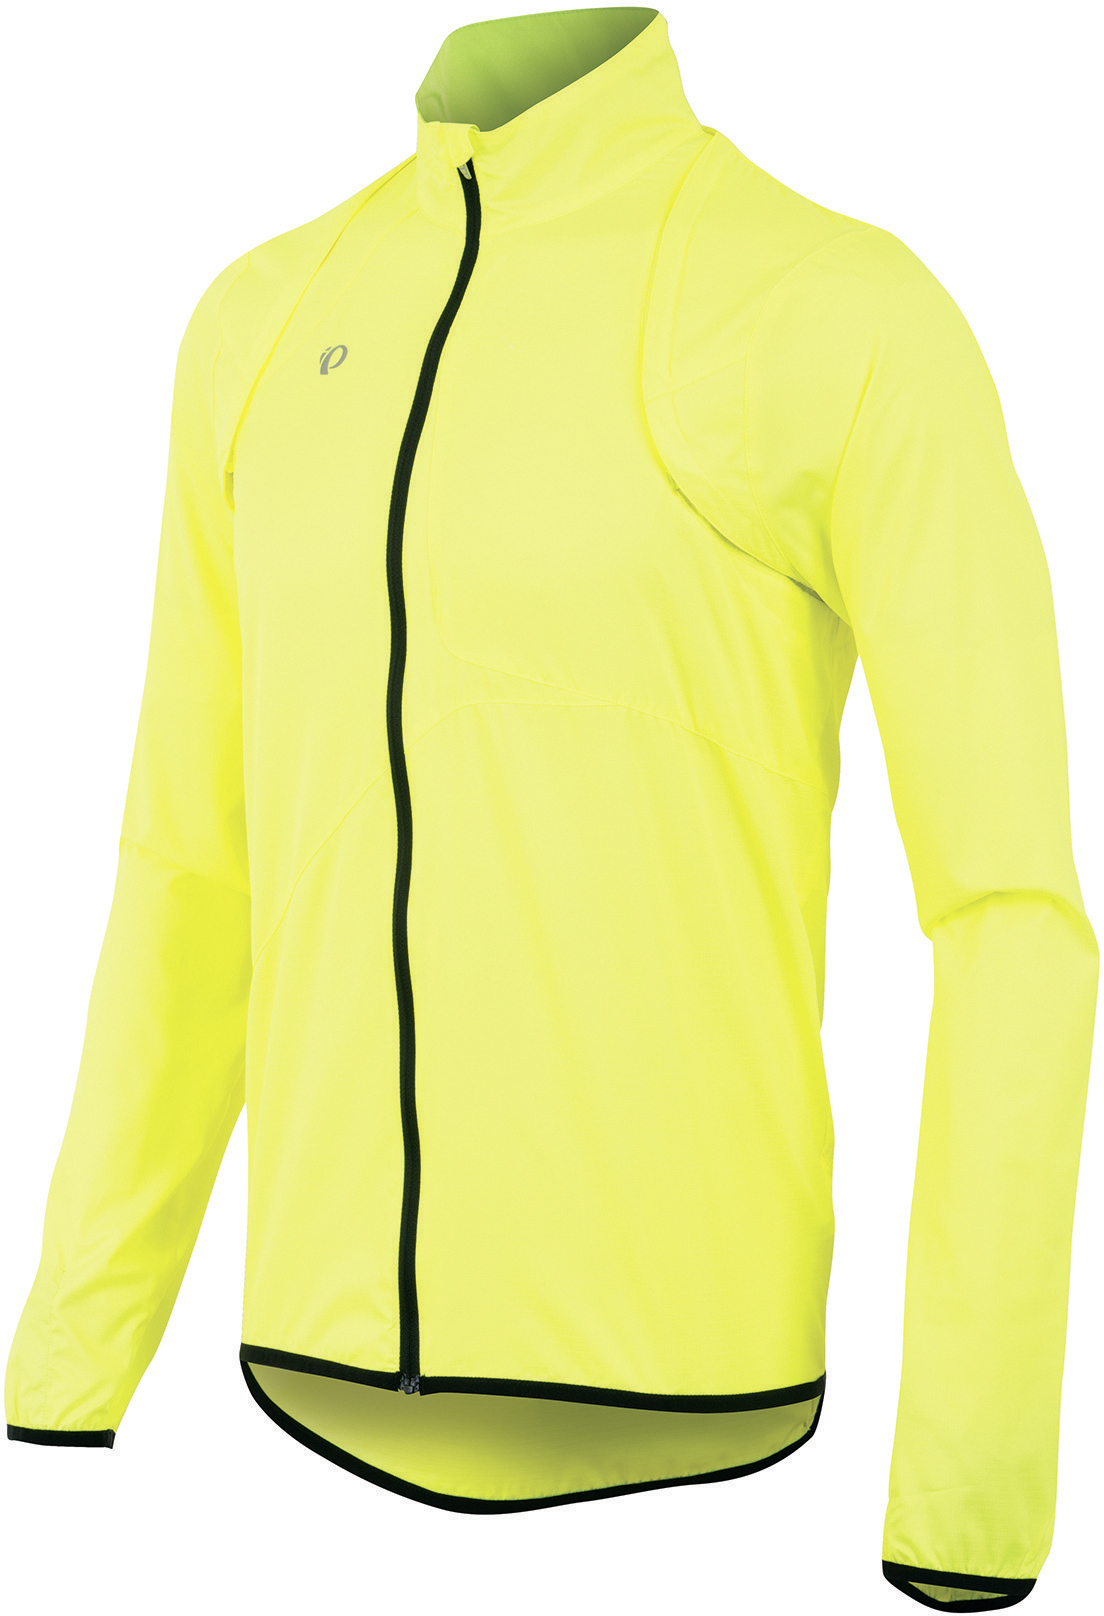 PEARL iZUMi FLY CONVERT bunda, screaming žlutá, XL